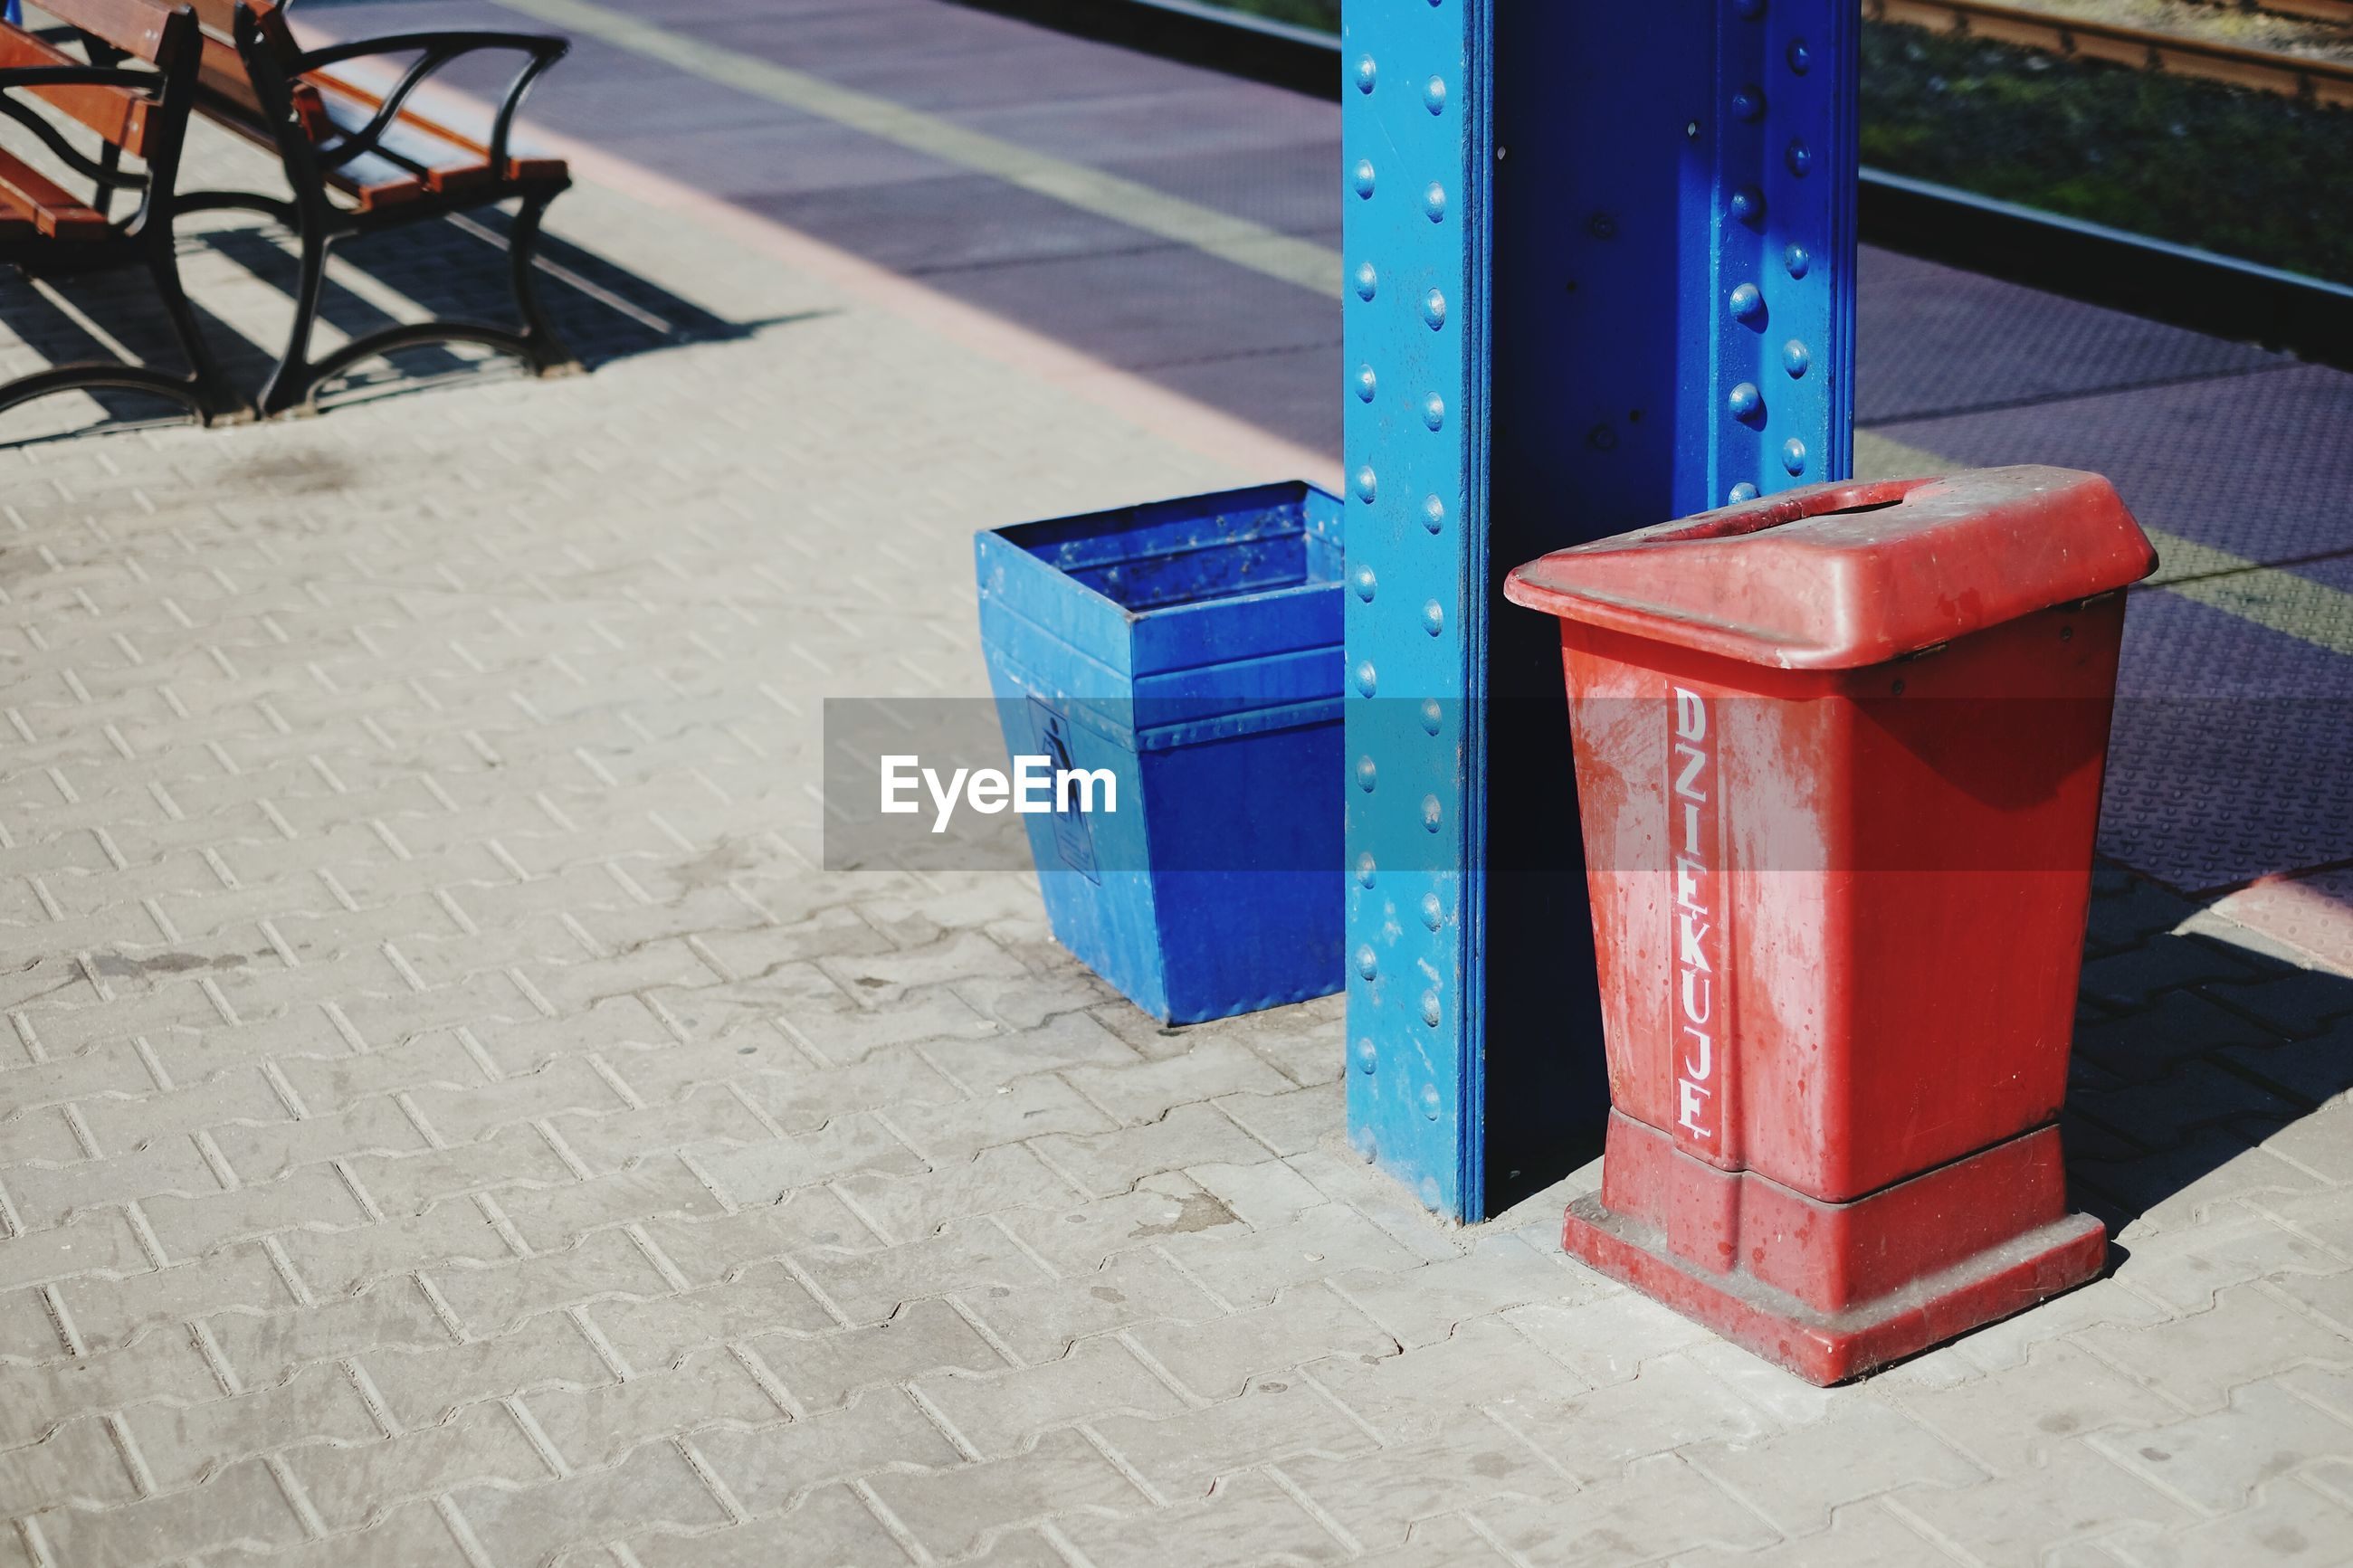 Garbage bins by pillar at railroad station platform